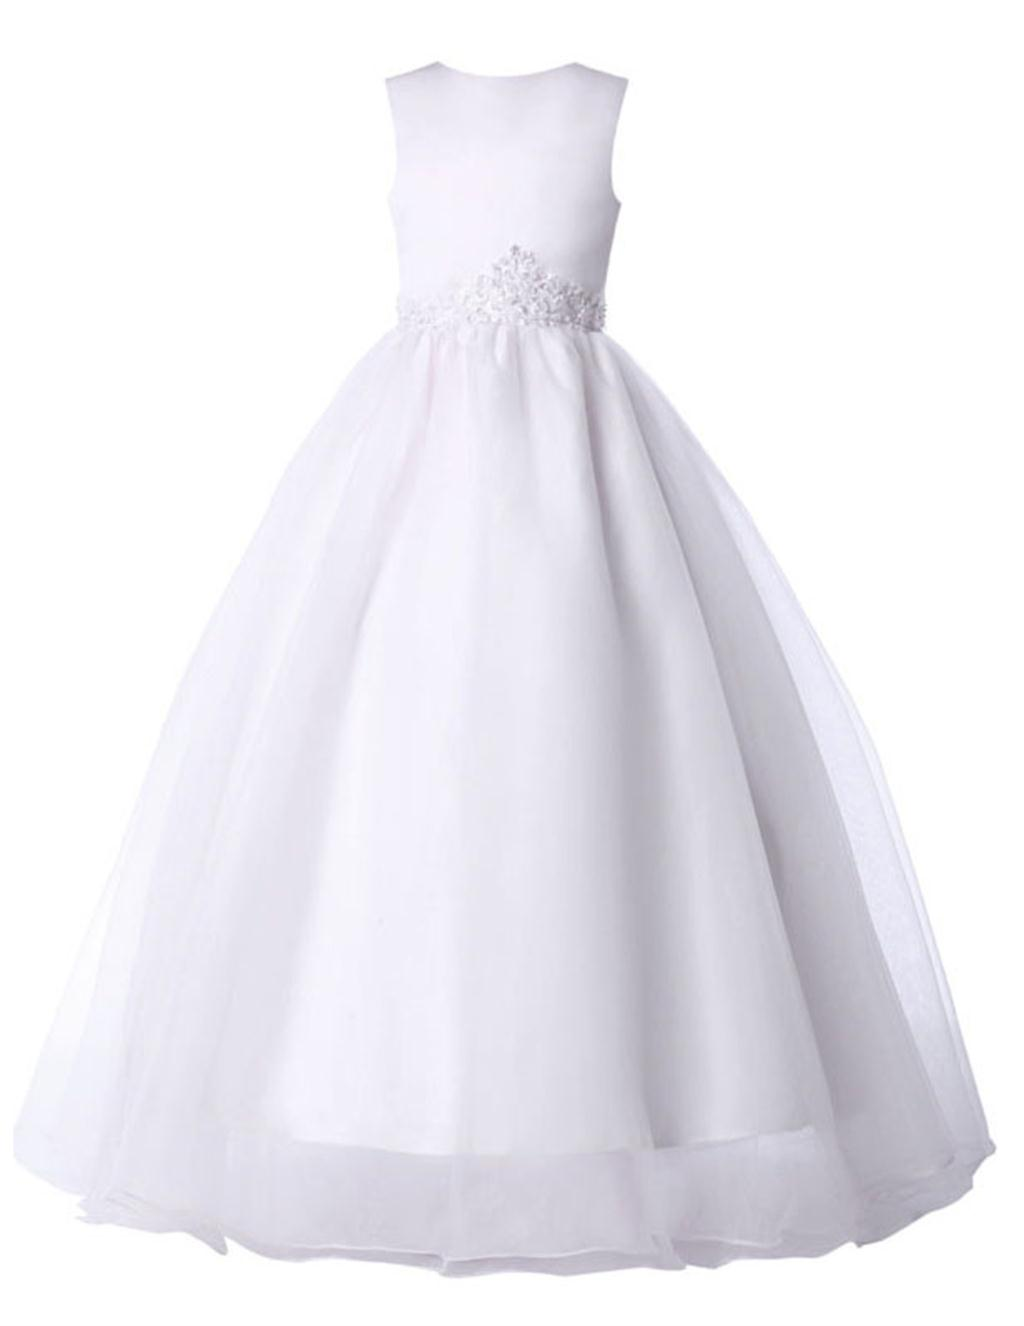 Kids Dream Flower Girl Dresses 33